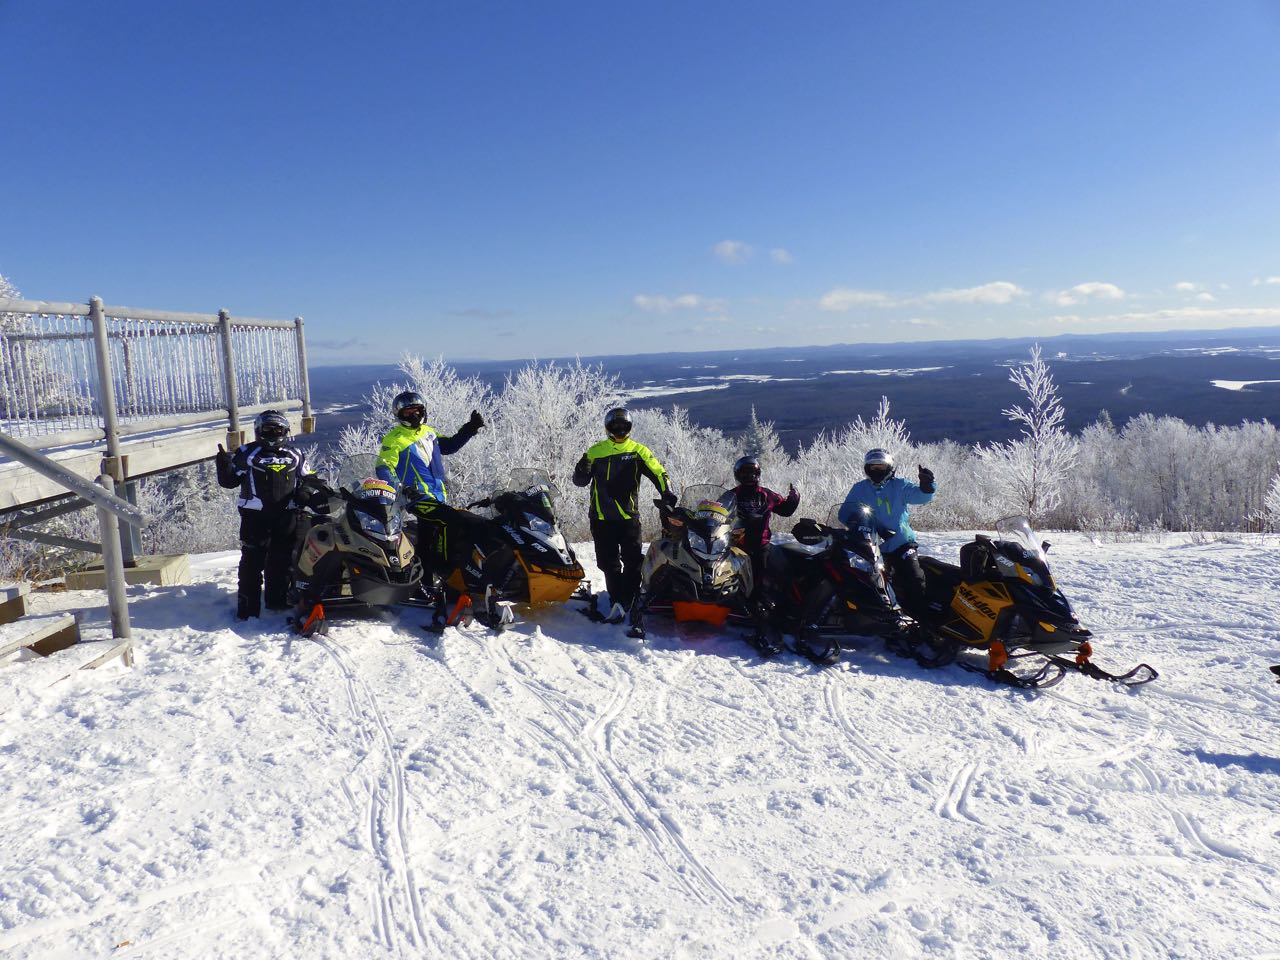 Ski doo sleds and FXR riders on Montagne du Diable in Laurentian Region of Quebec